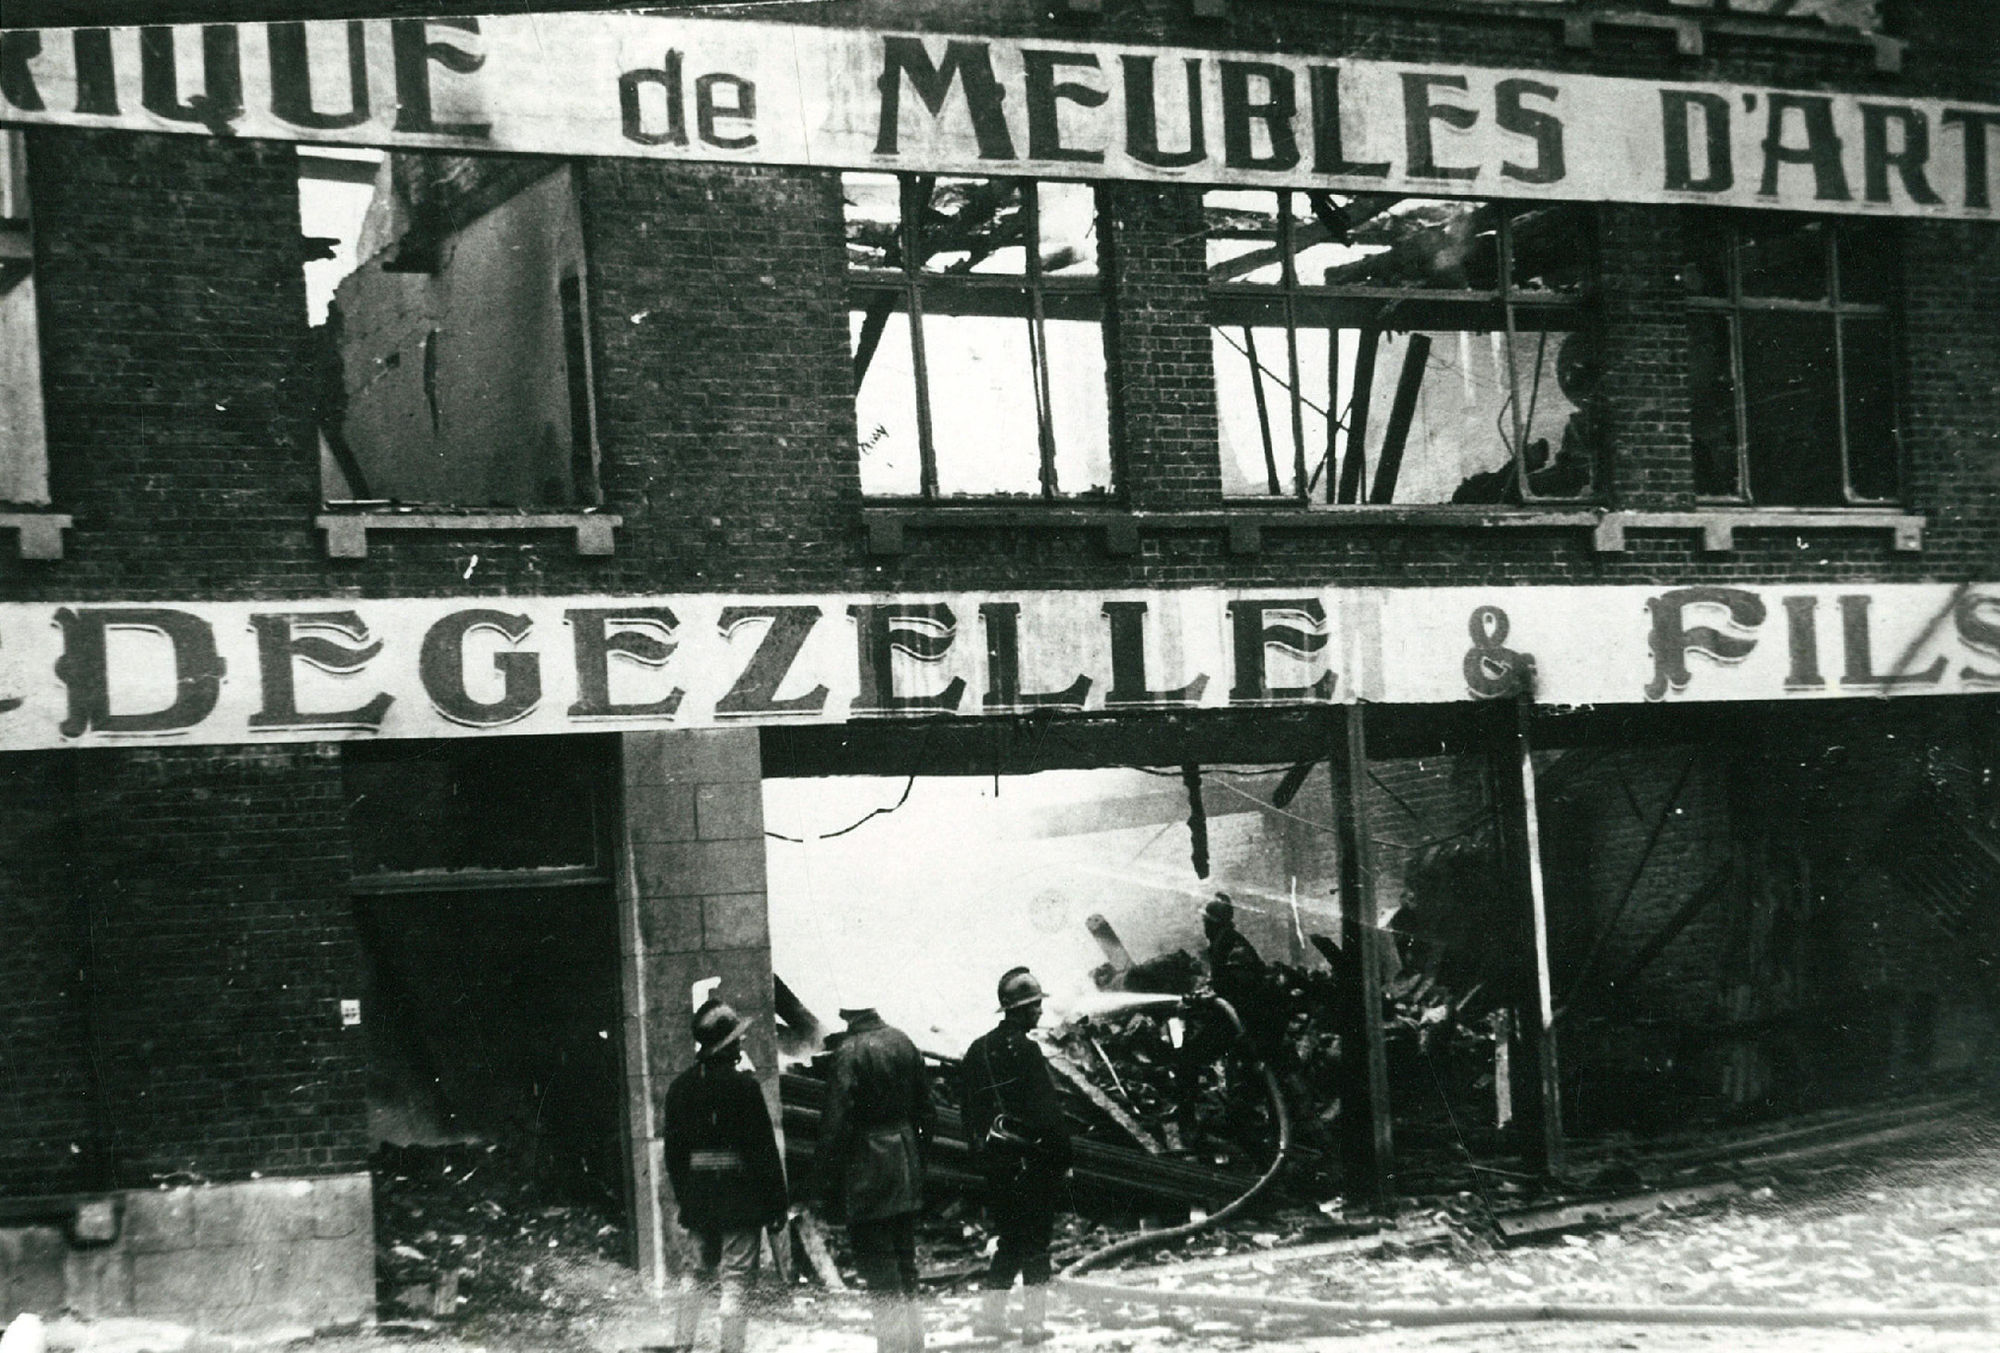 Brand meubelzaak Degezelle in 1930